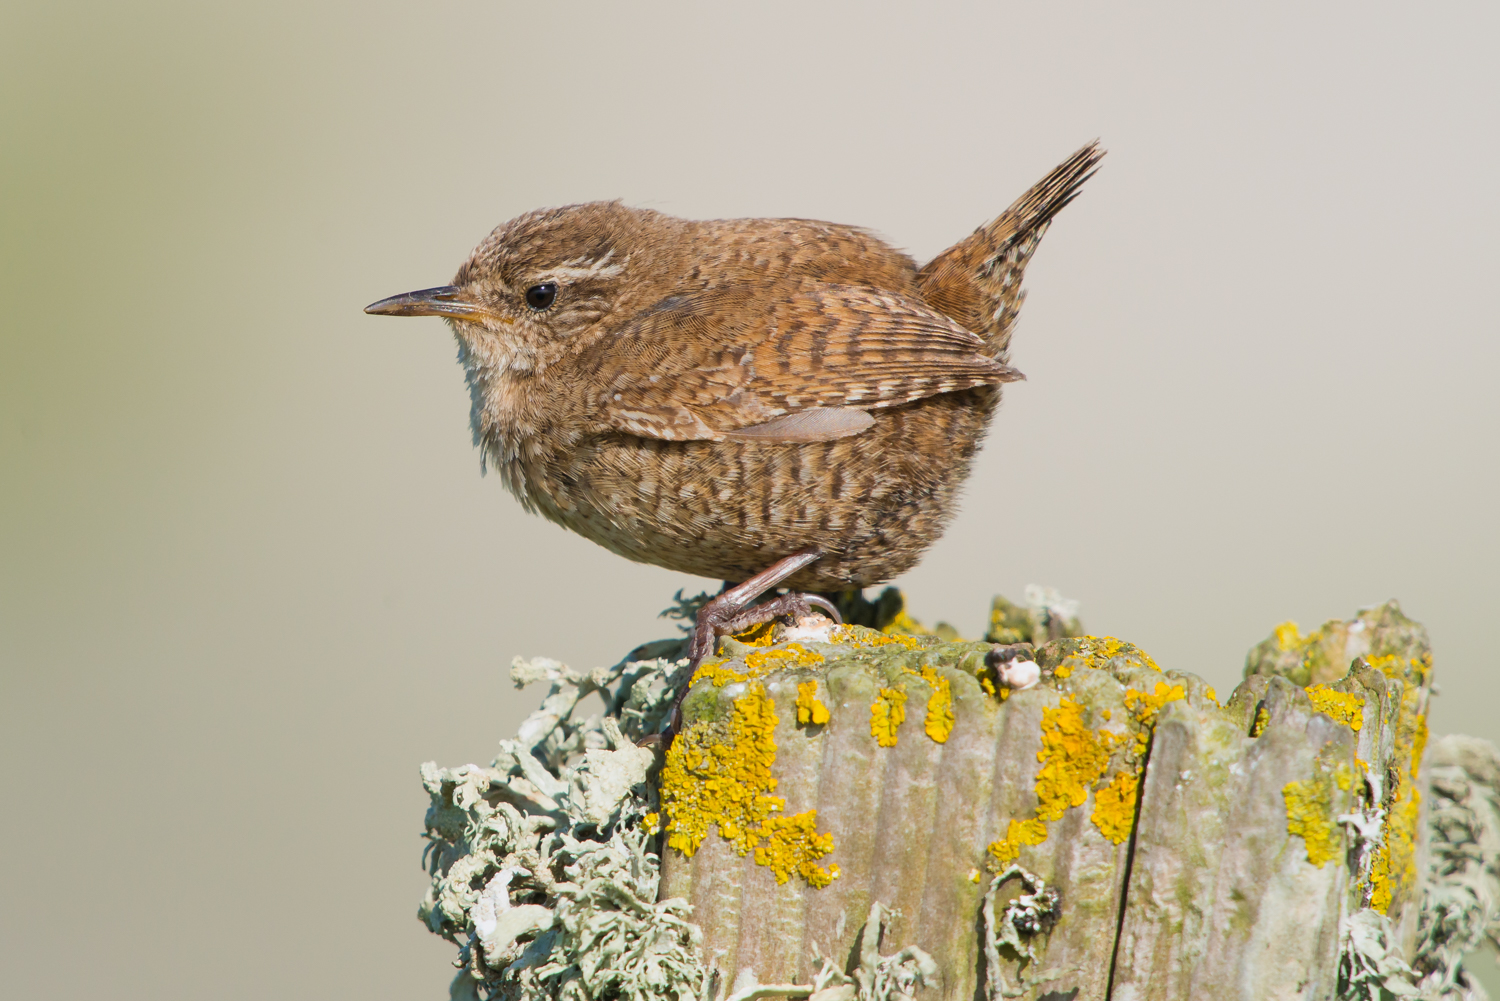 Winter Wren, UK birds, wildlife